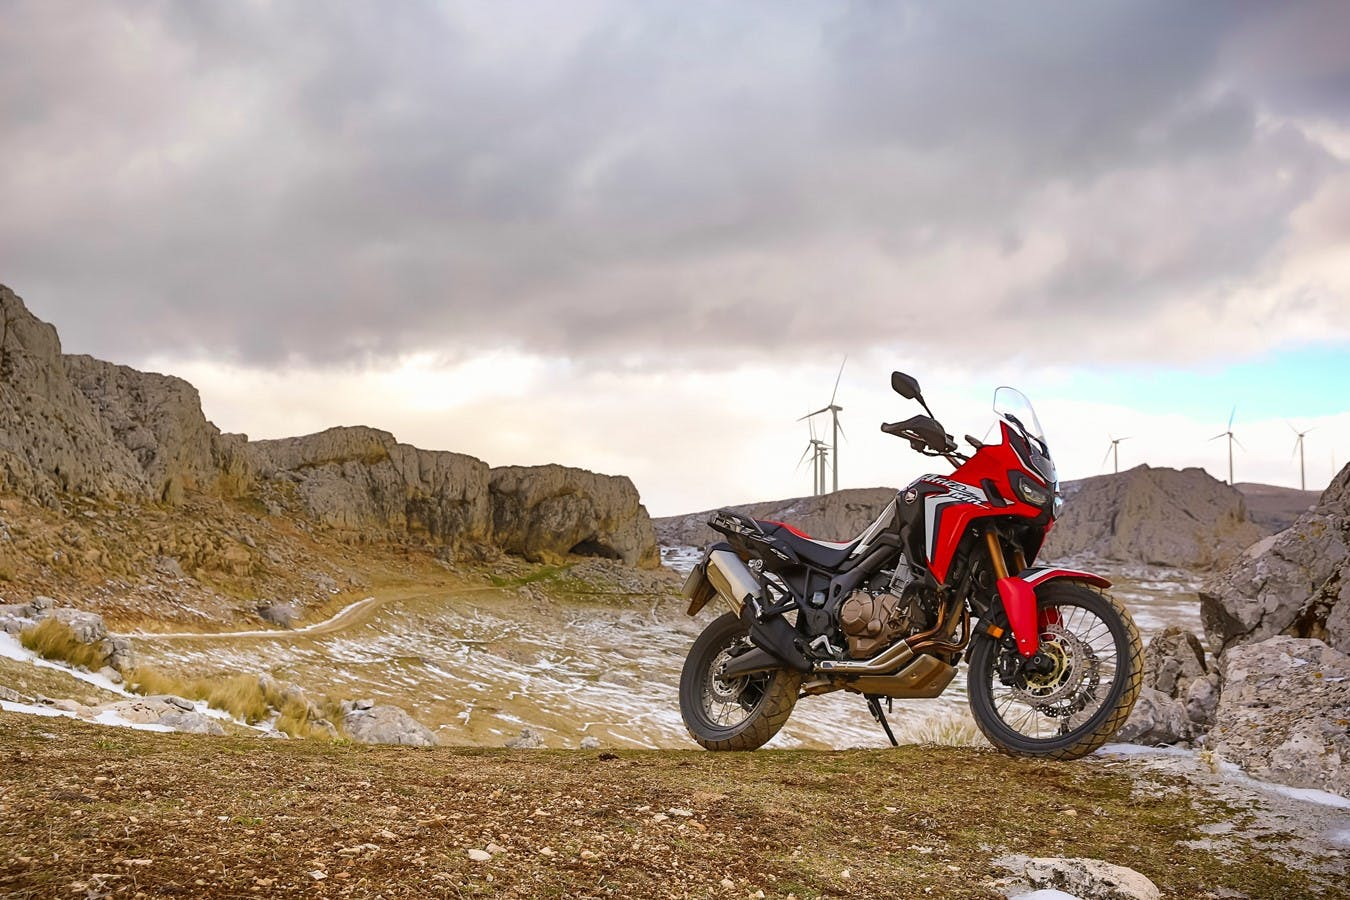 Honda 2018 africa twin in grand prix red  colour, parked on a hill